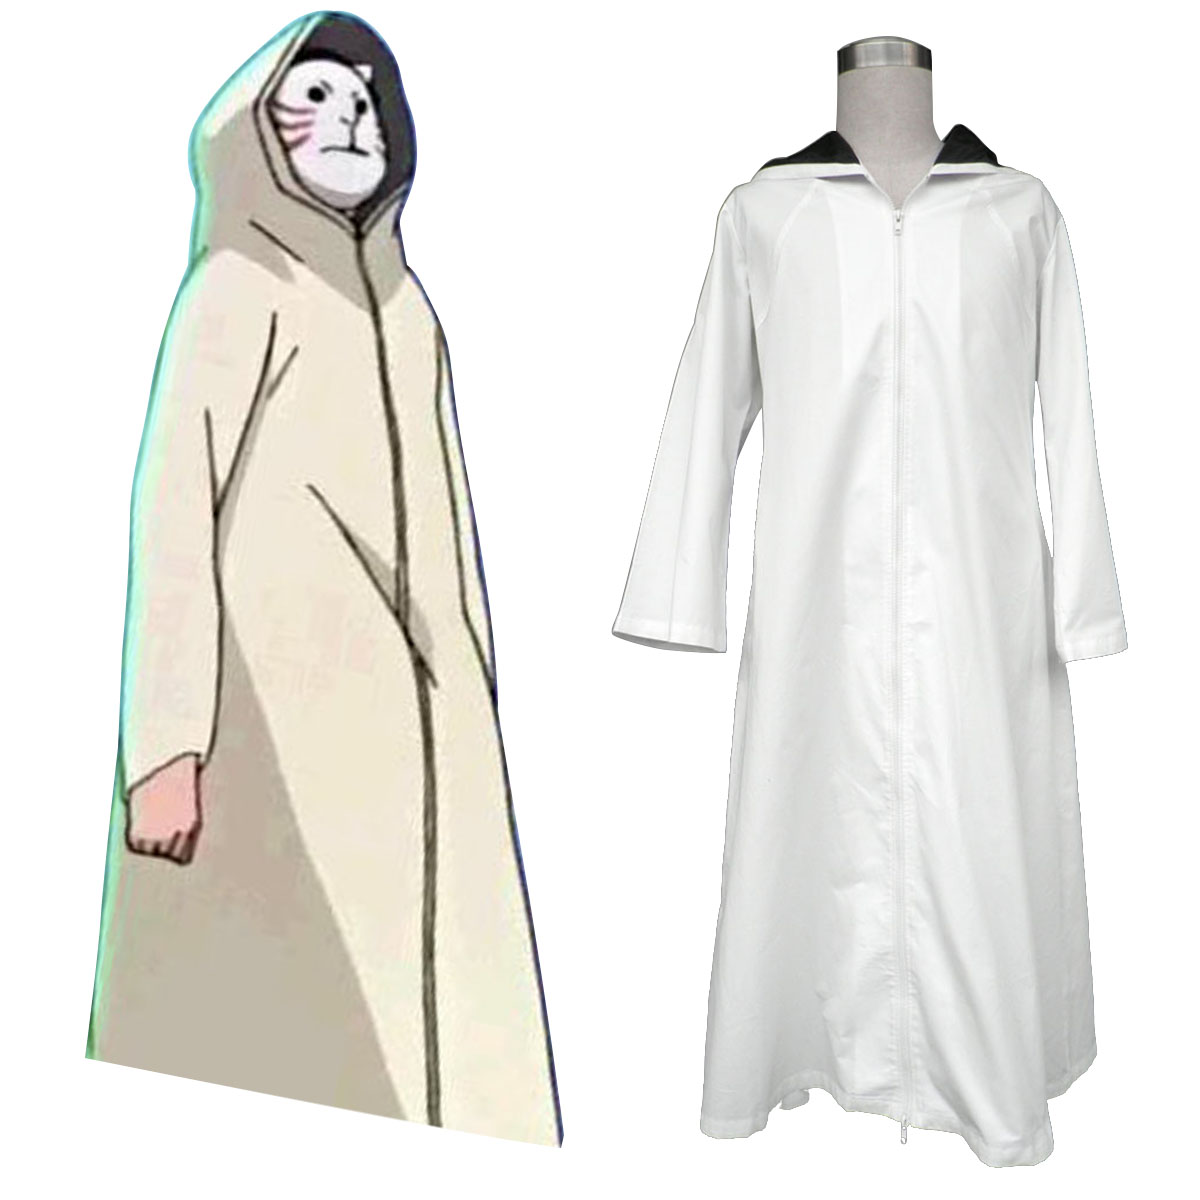 Naruto ANBU Cloak 1 Anime Cosplay Costumes Outfit